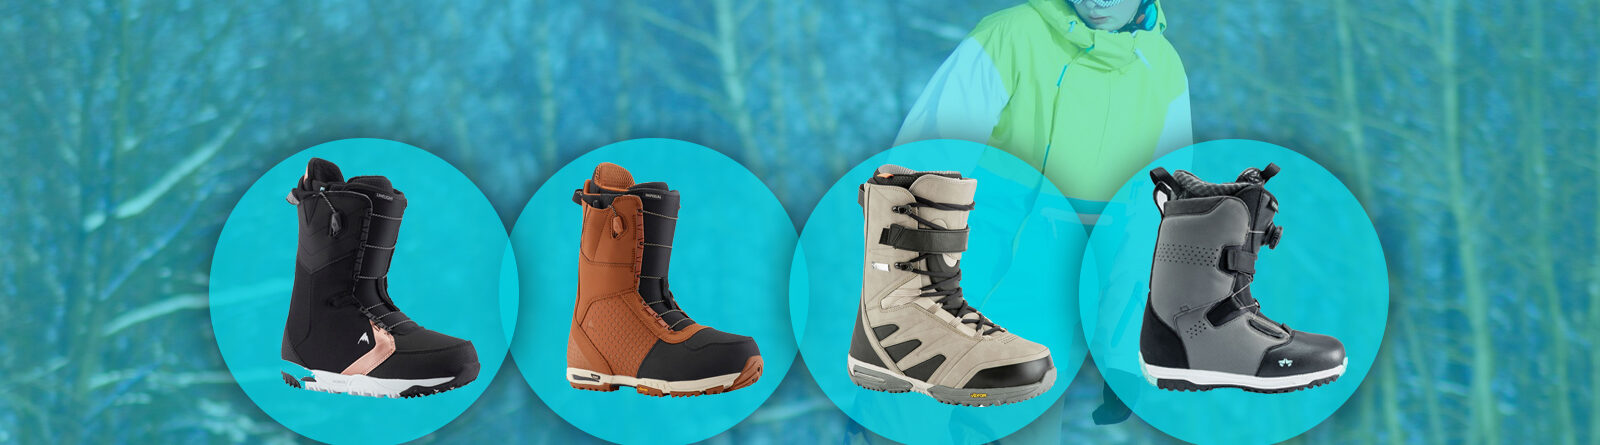 Freeride Snowboard Boots